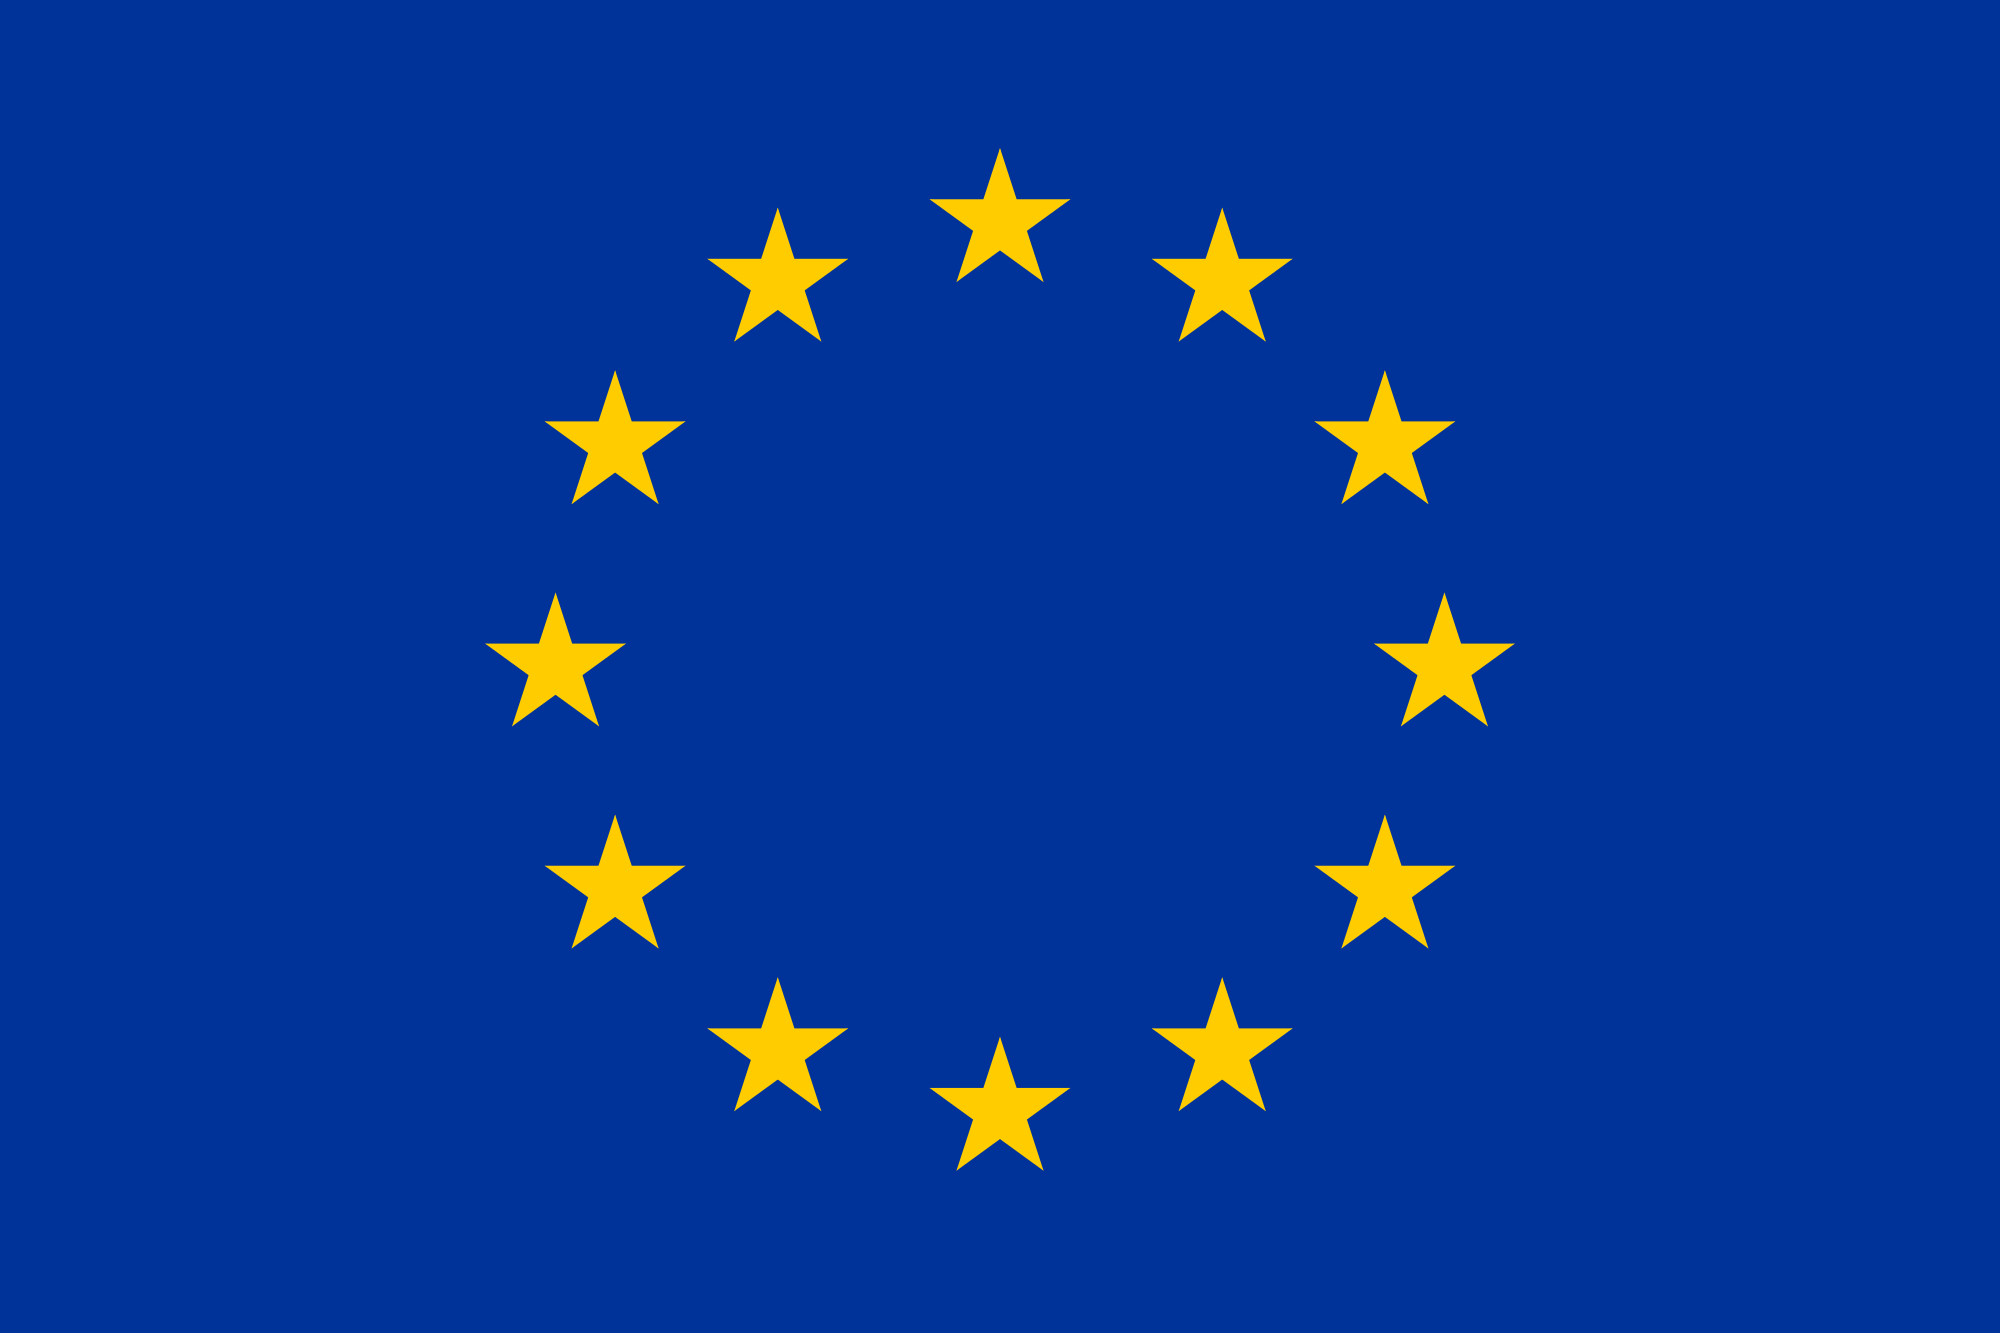 Flag_of_Europe.png.png